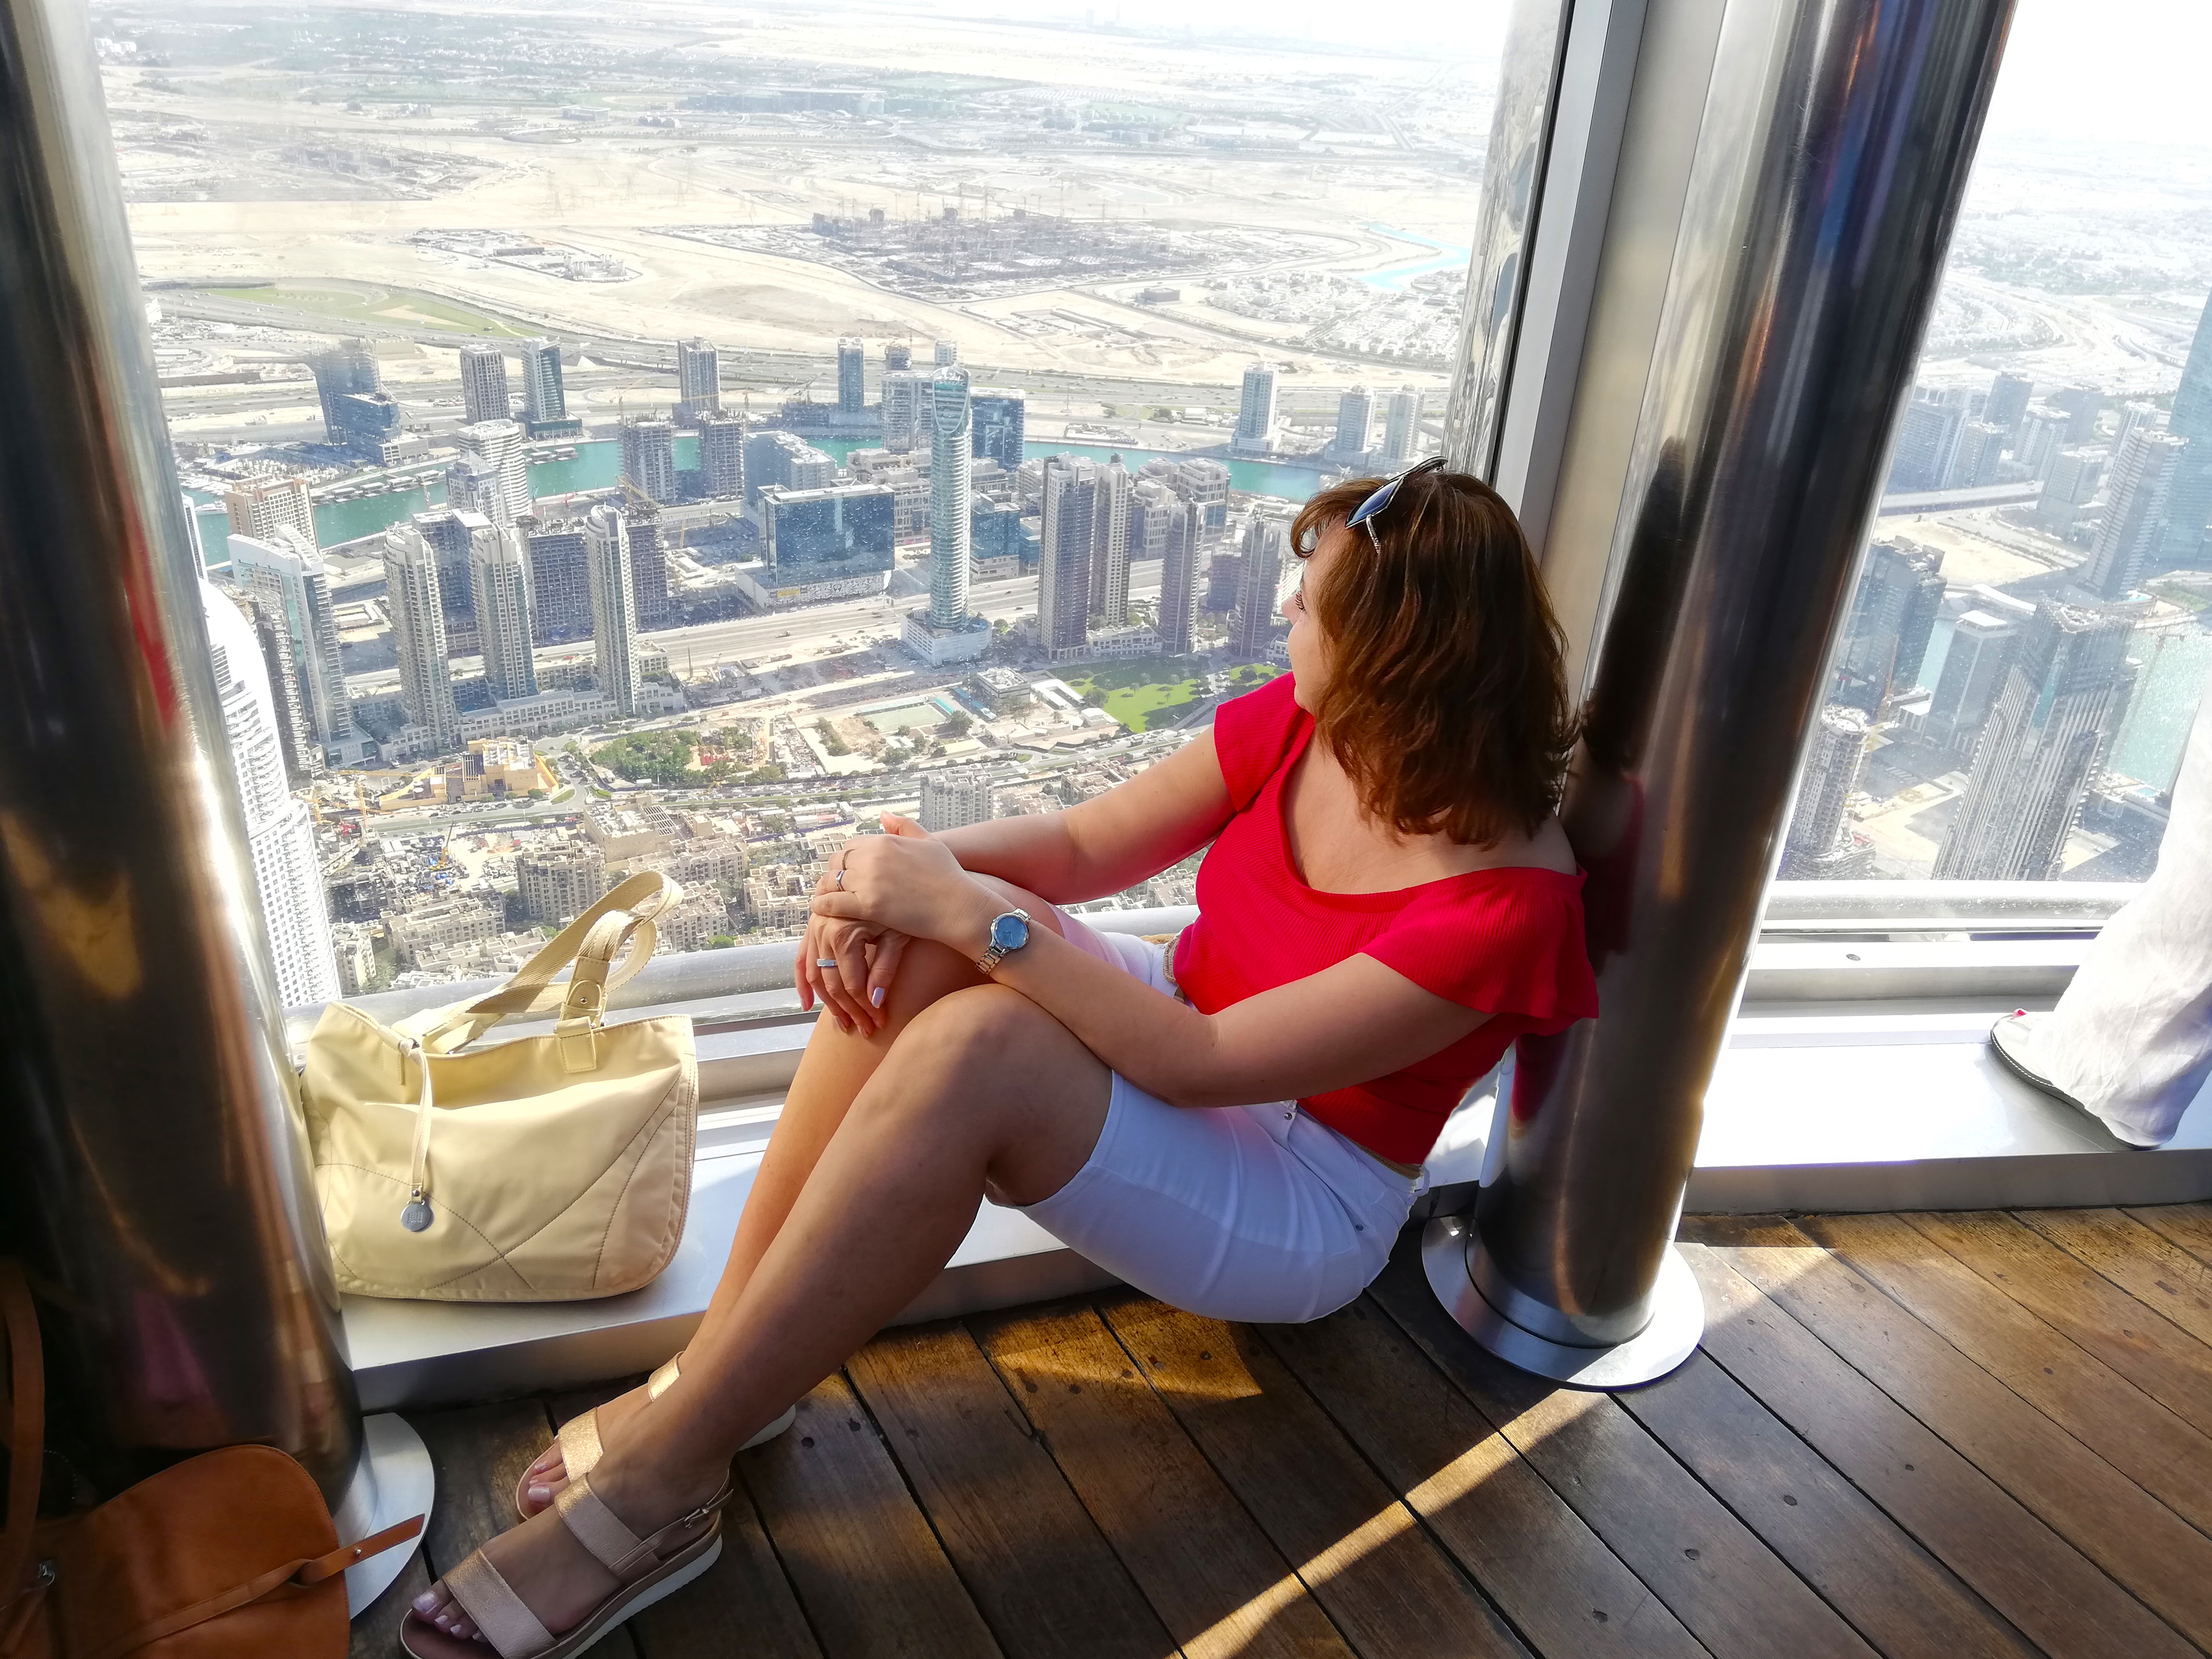 3 nights in Dubai: At the Top of Burj Khalifa